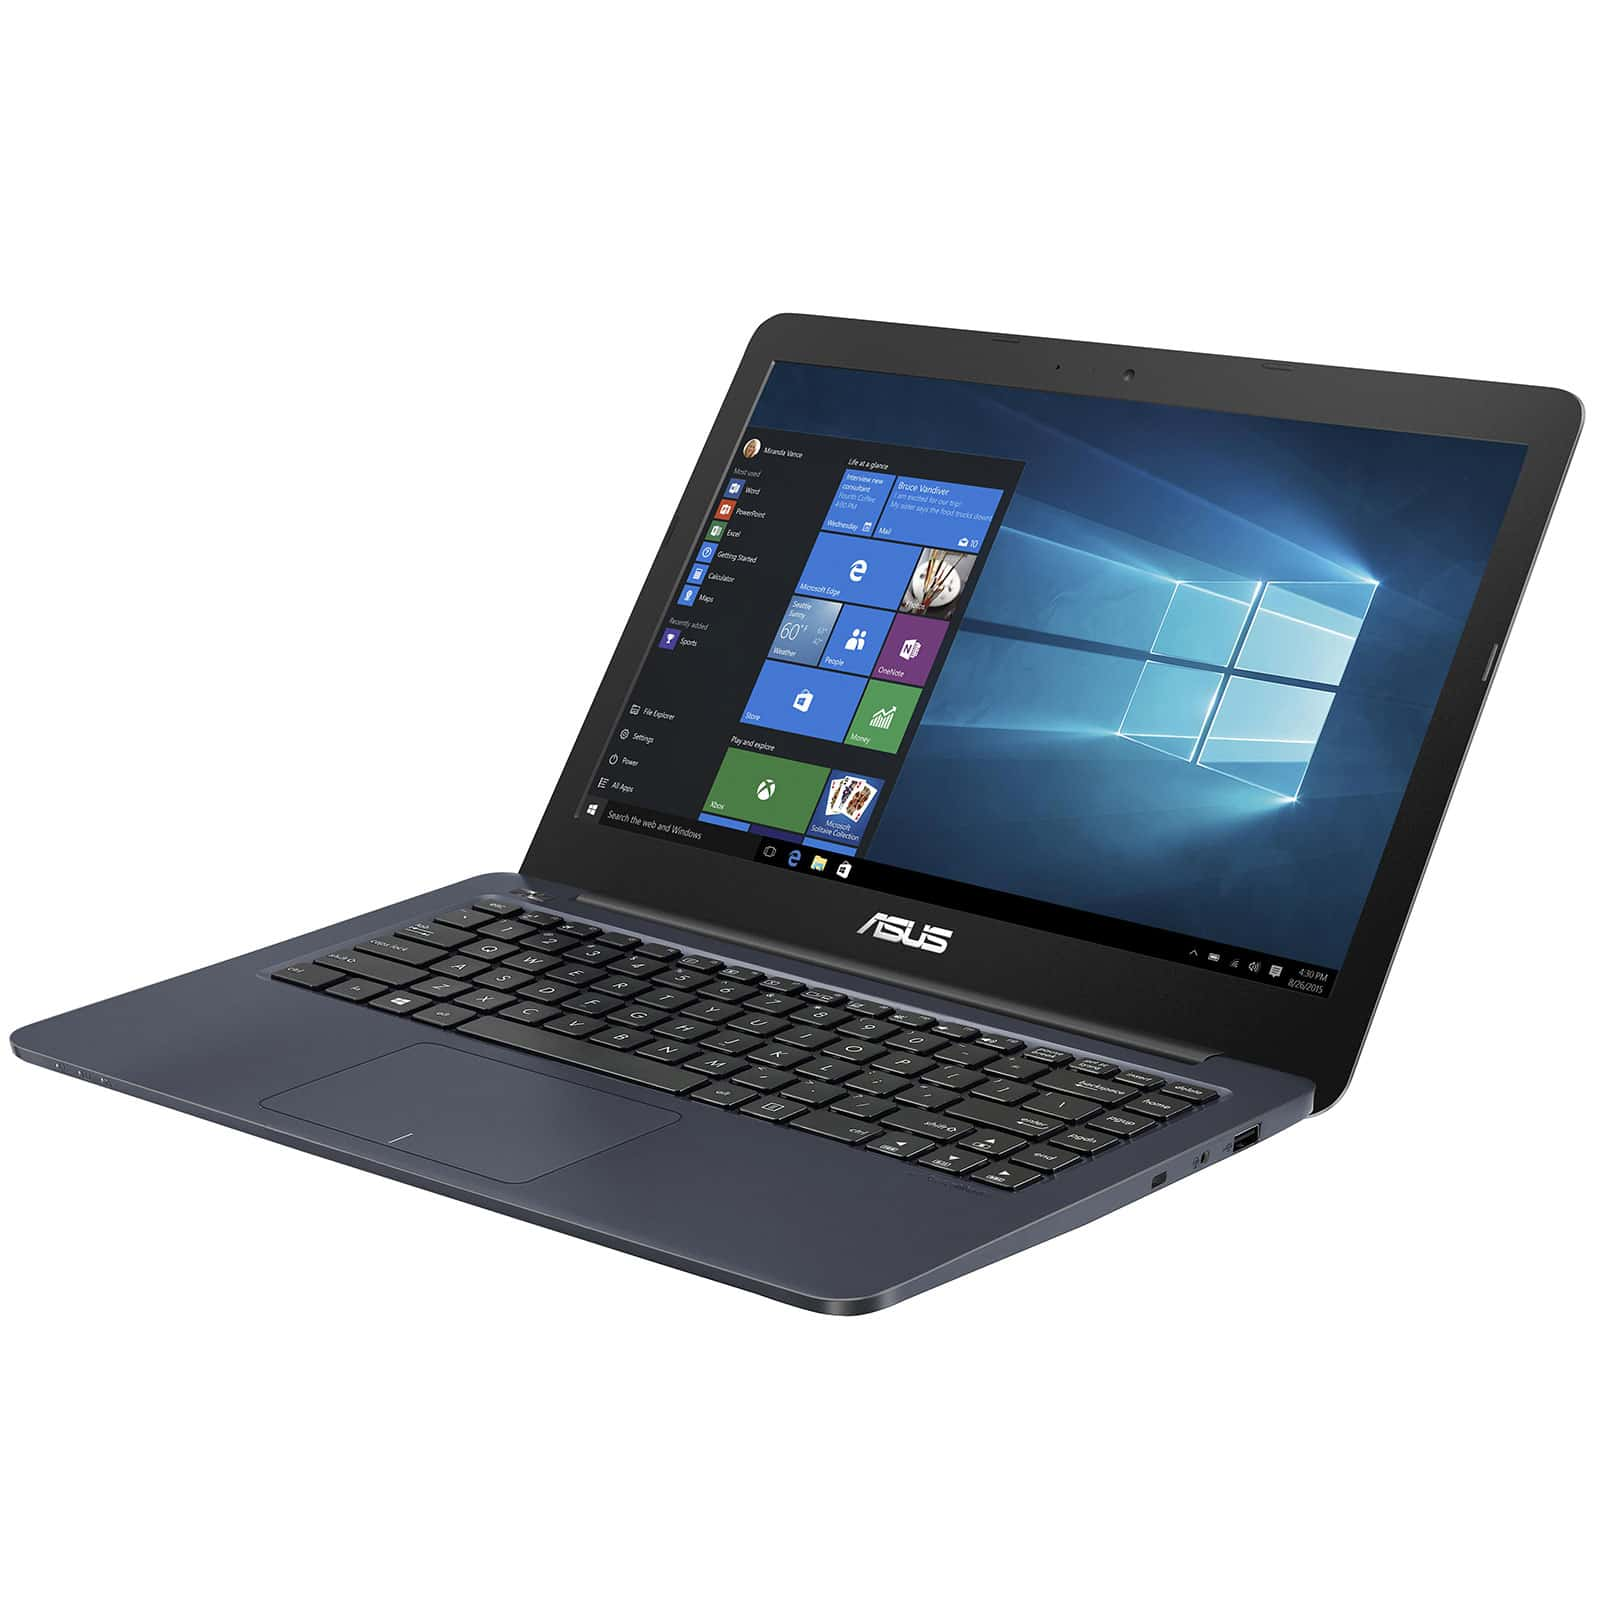 Meilleur pc portable asus eeebook • Comparatif de 2019 • Avis   Test • TOP 5 ! ef59f9b6d3e1